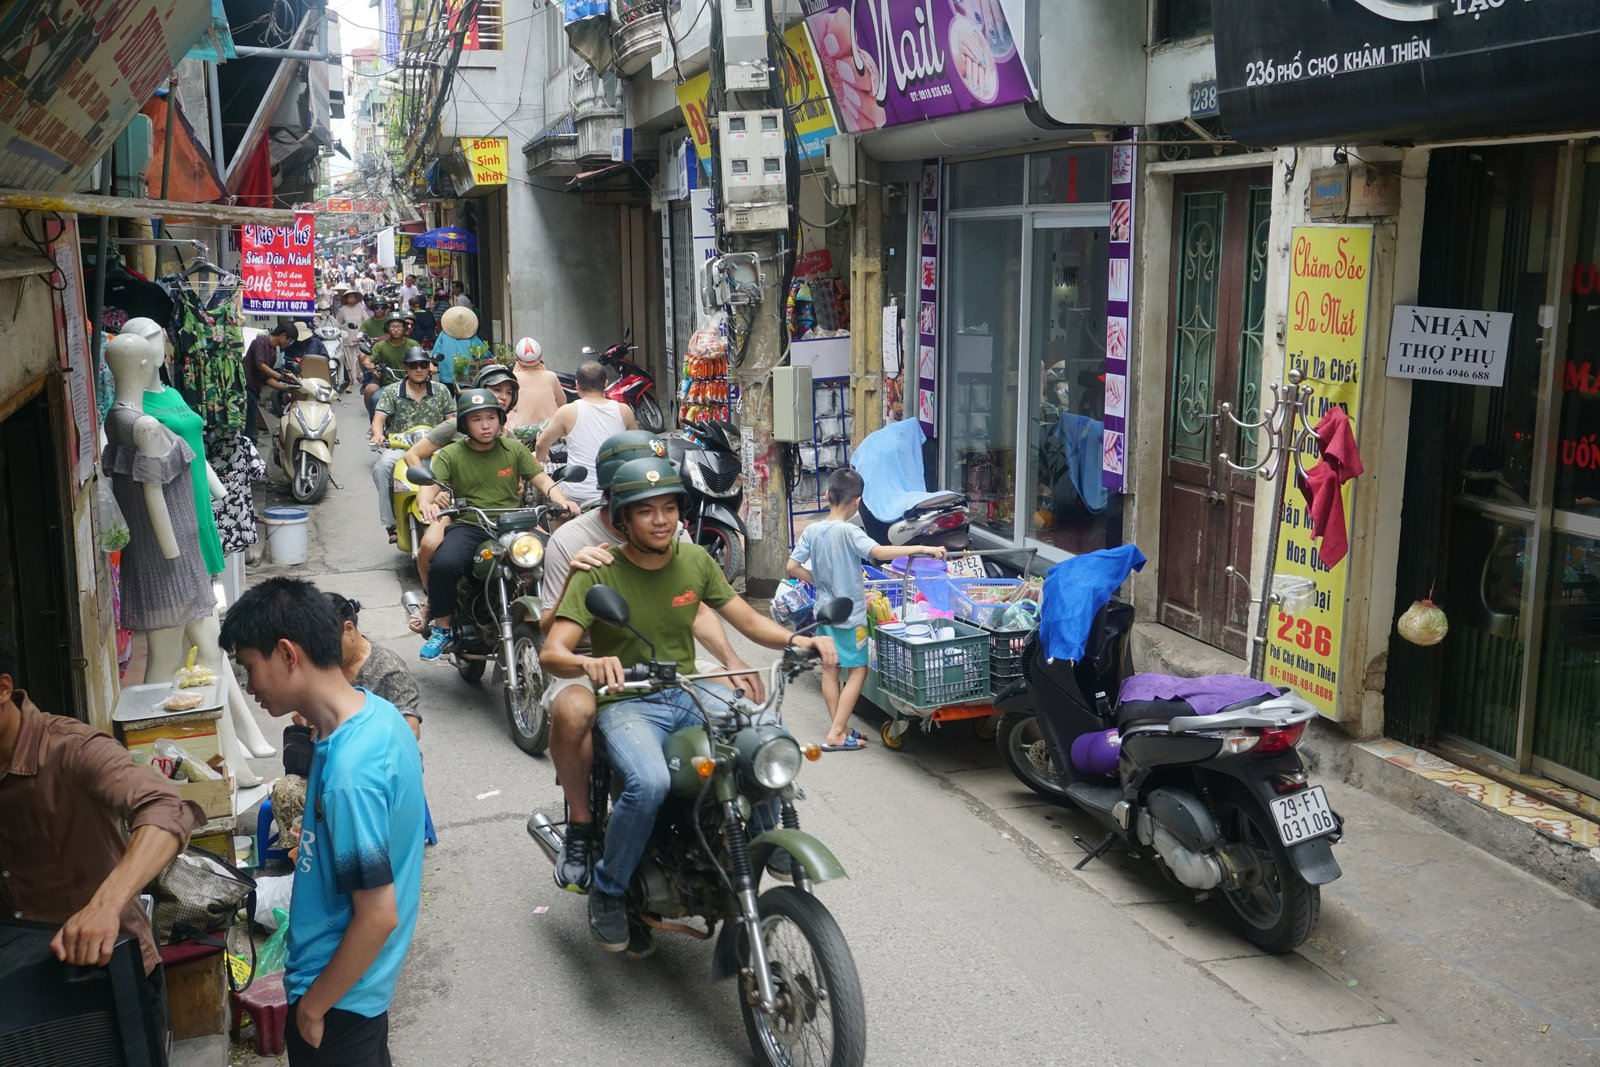 Hanoi Street Food Tour By Scooter Motorbike